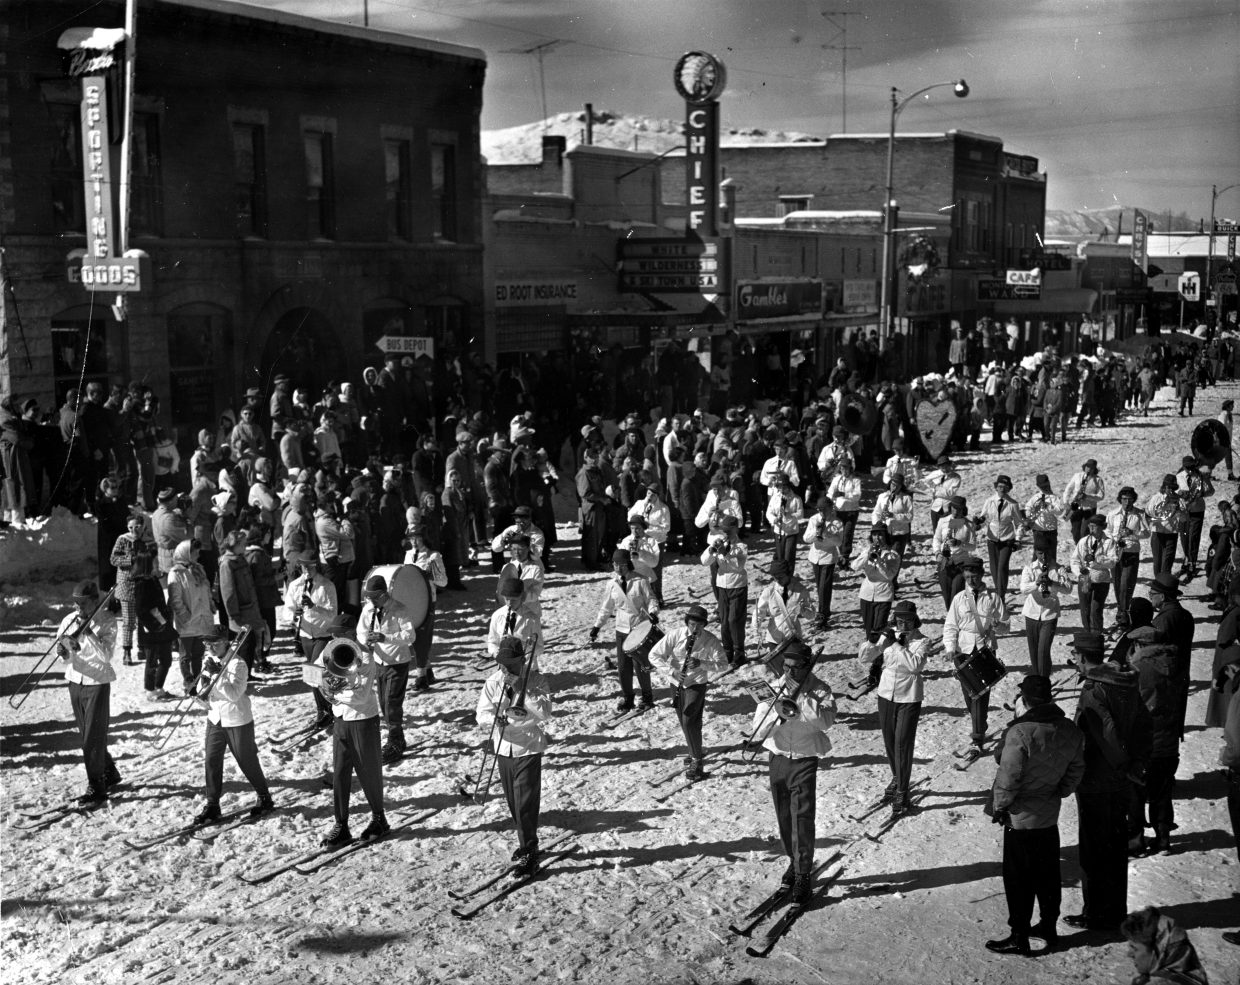 Taken in the 1950s, this photo shows a band in front of the Chief Theater for the traditional Winter Carnival event that has been going on for the past 102 years.